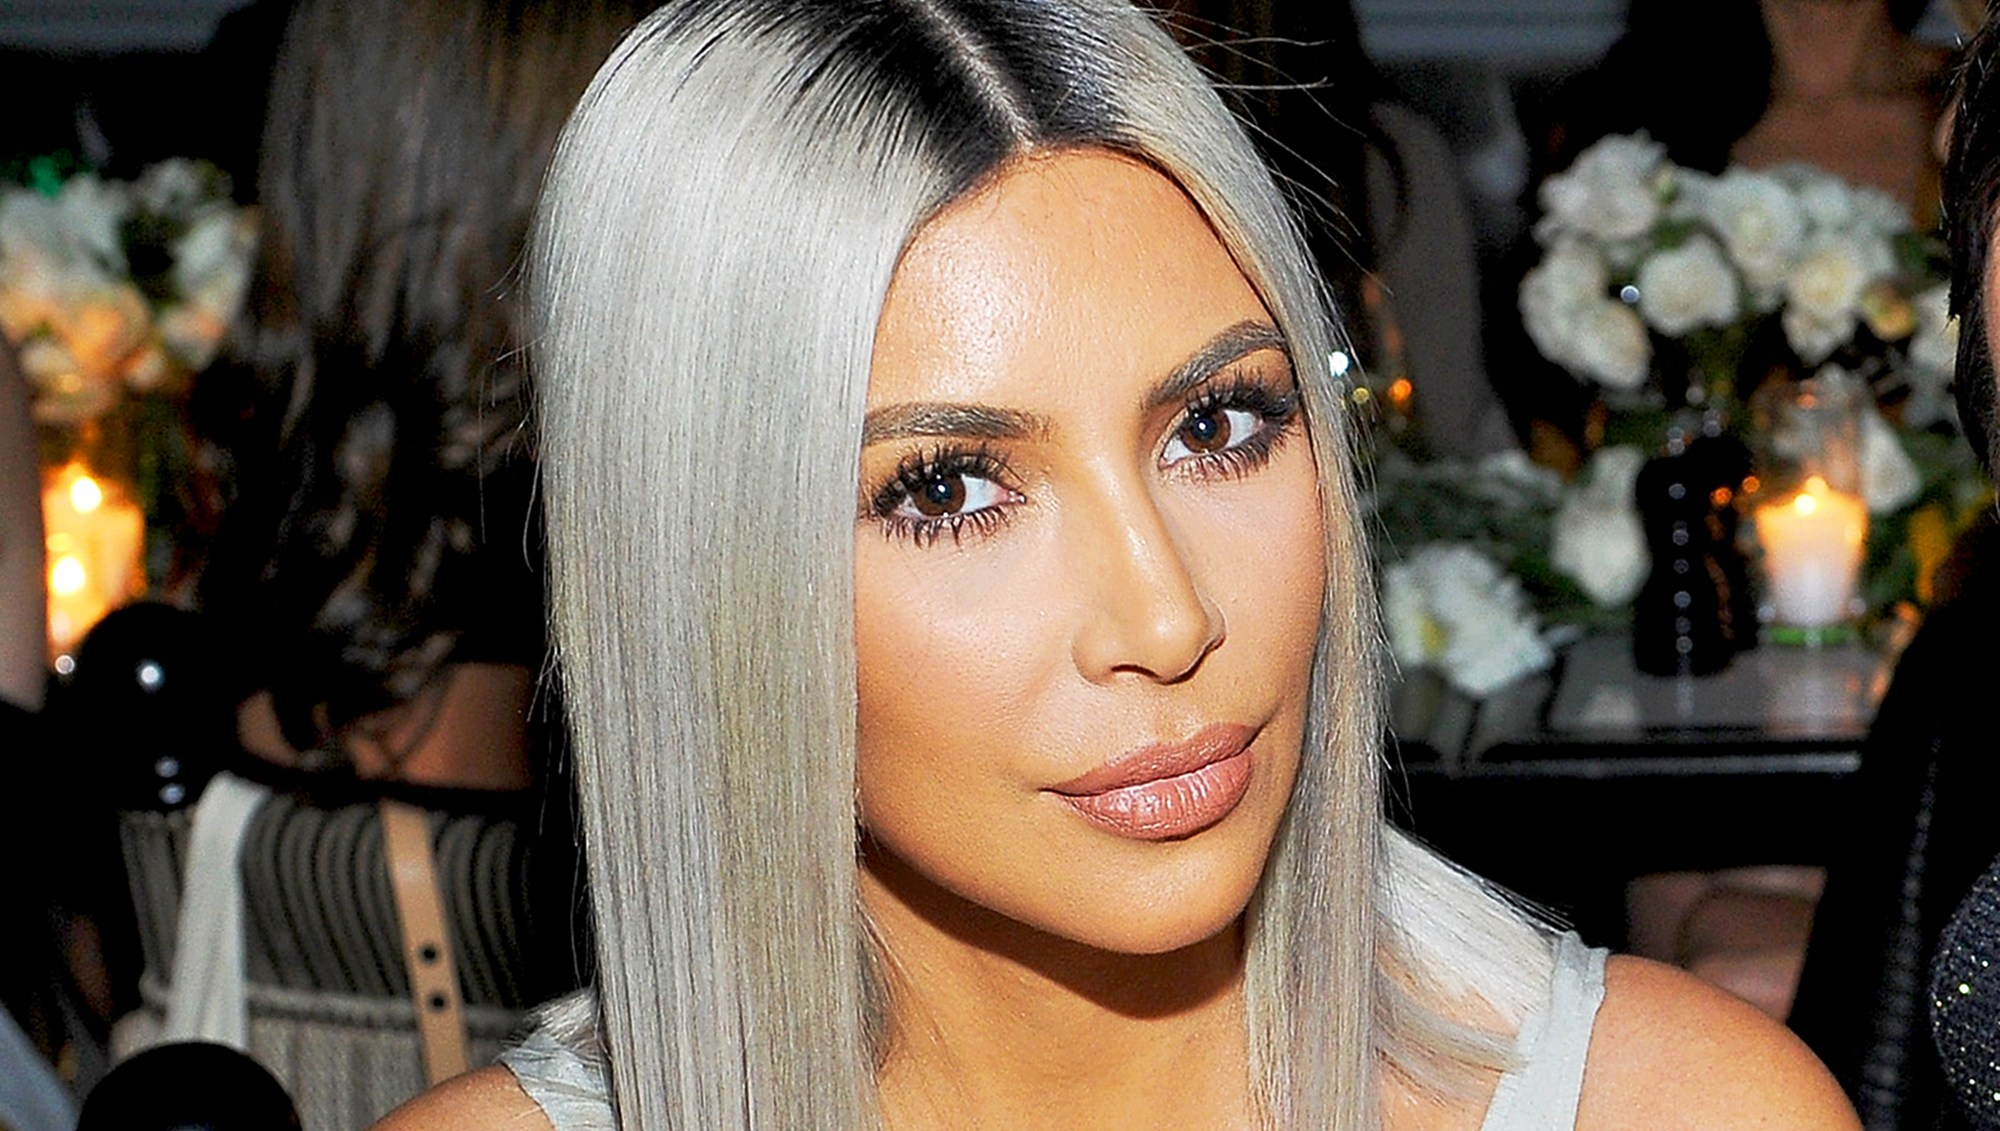 Kim Kardashian attend The Tot holiday pop-up celebration at Laduree at the Grove in Los Angeles, California.